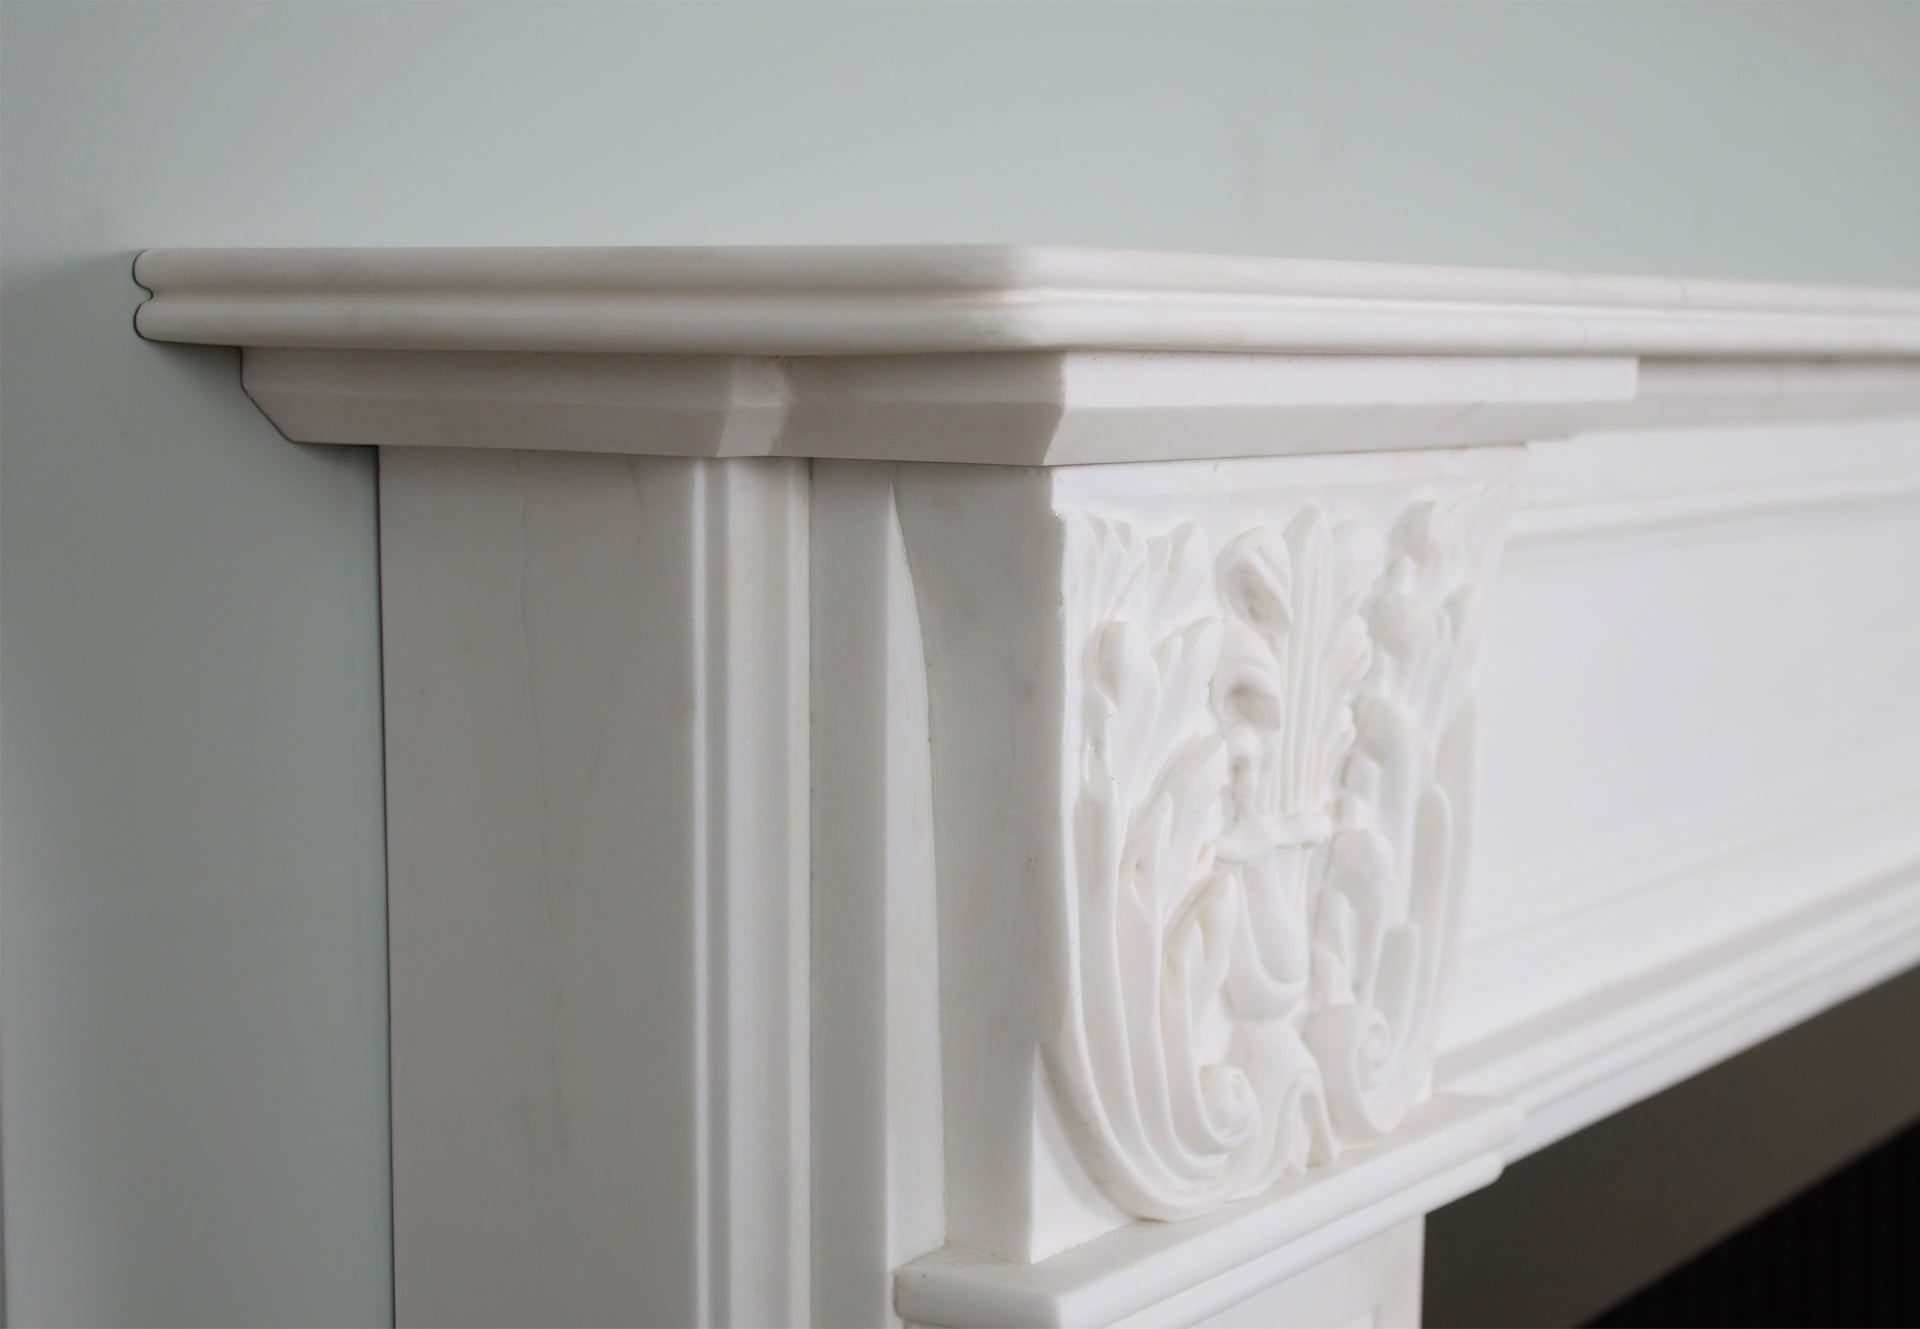 Grosvenor-Limestone-Fireplace-Surround-London-Slider